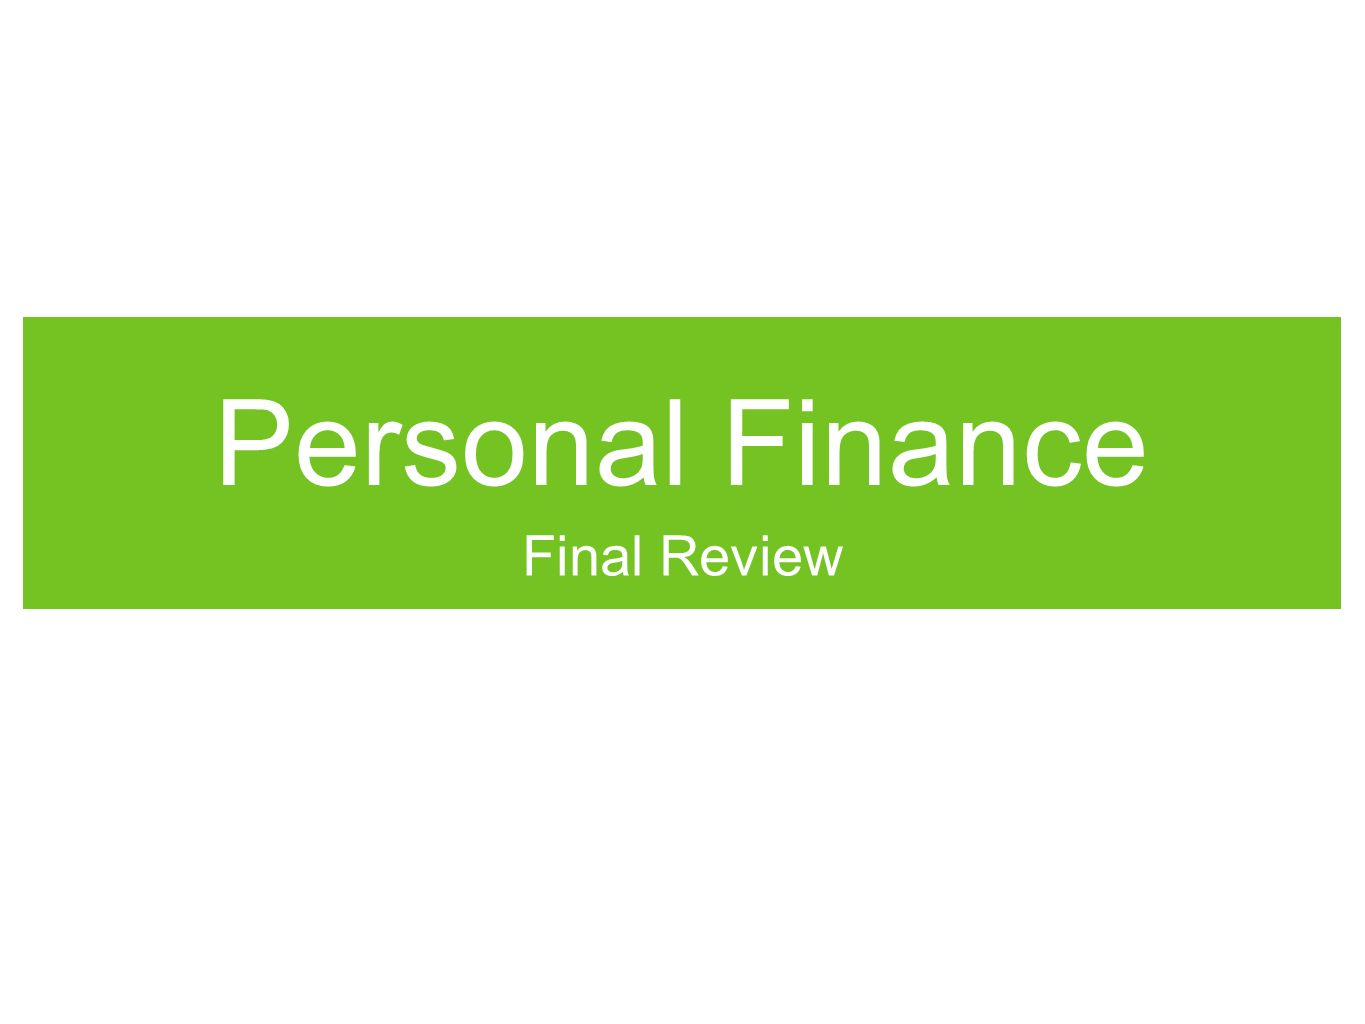 Personal Finance Final Review